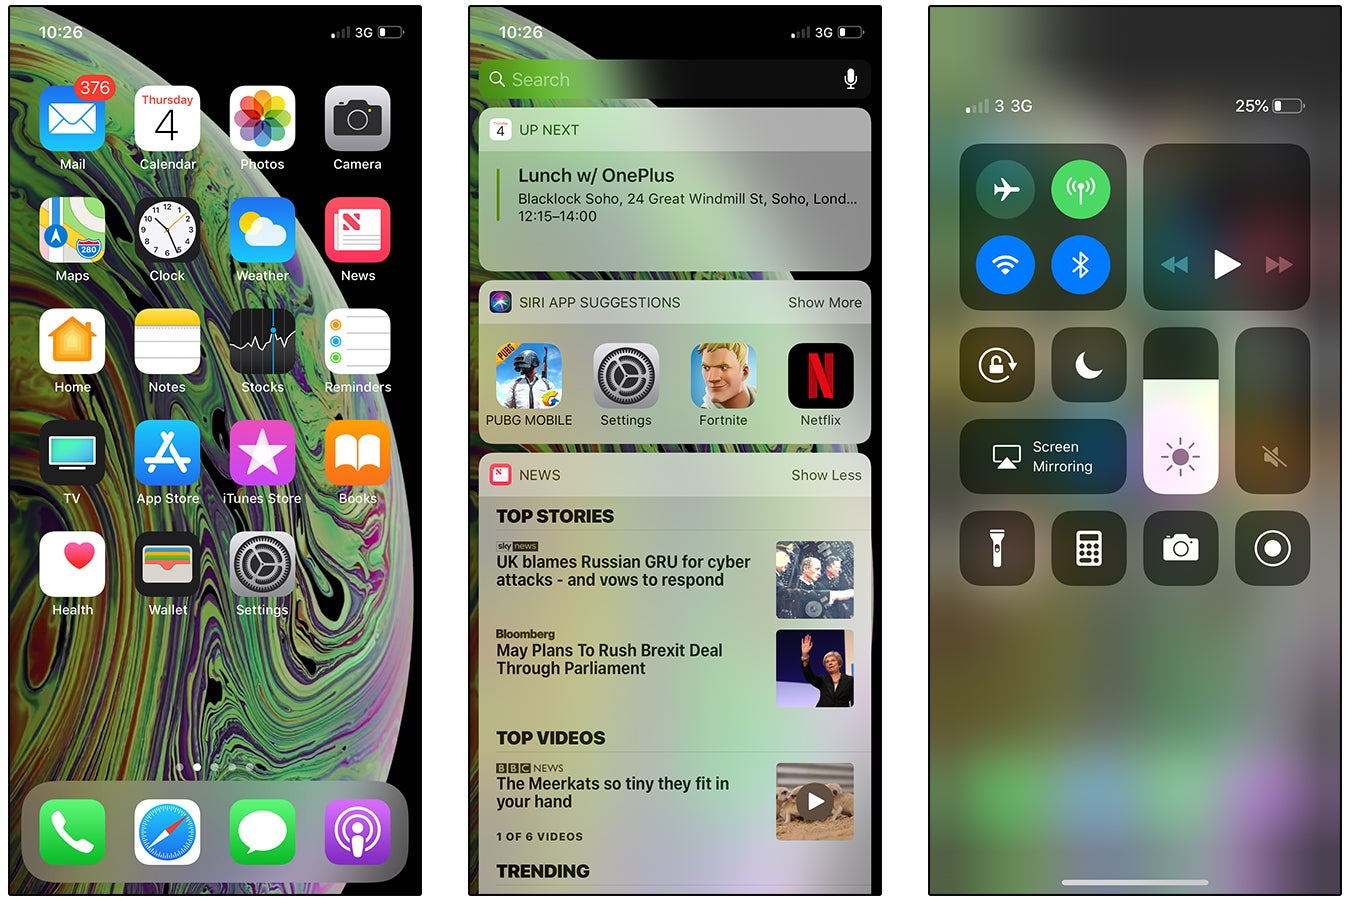 iPhone XS screenshots - Home screen, Today View, Control Centre